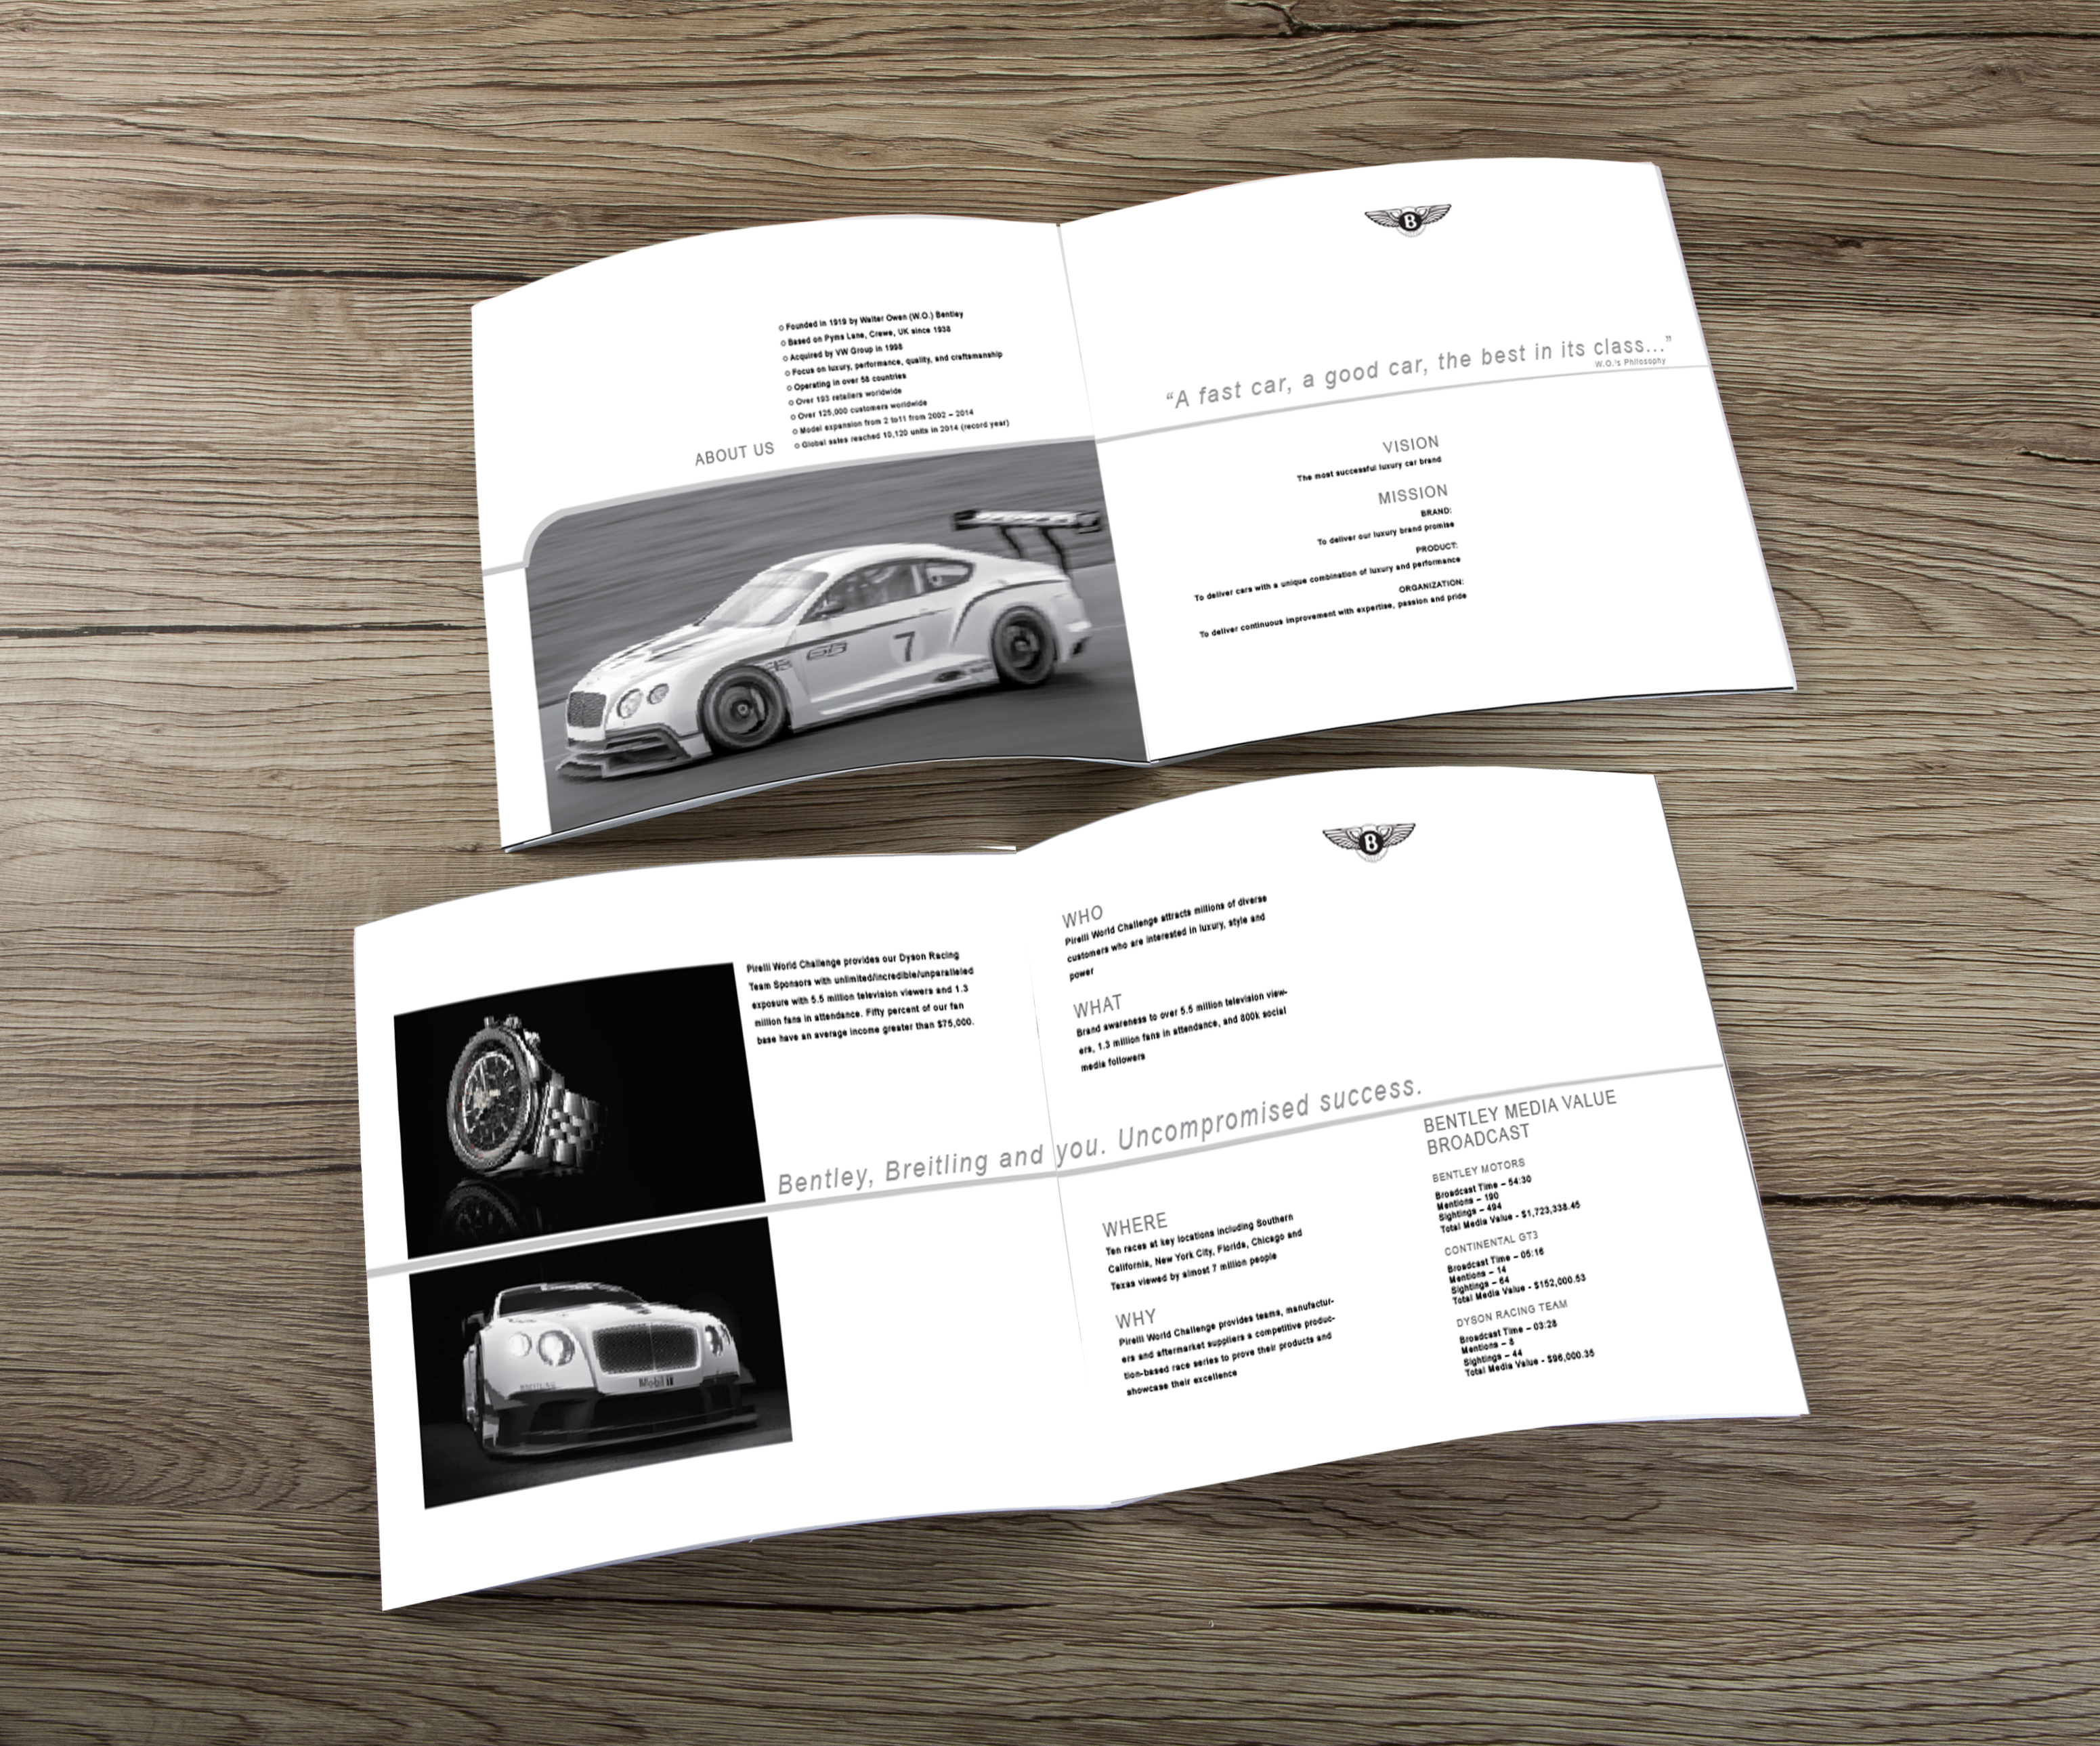 Breitling/Bentley Brochure